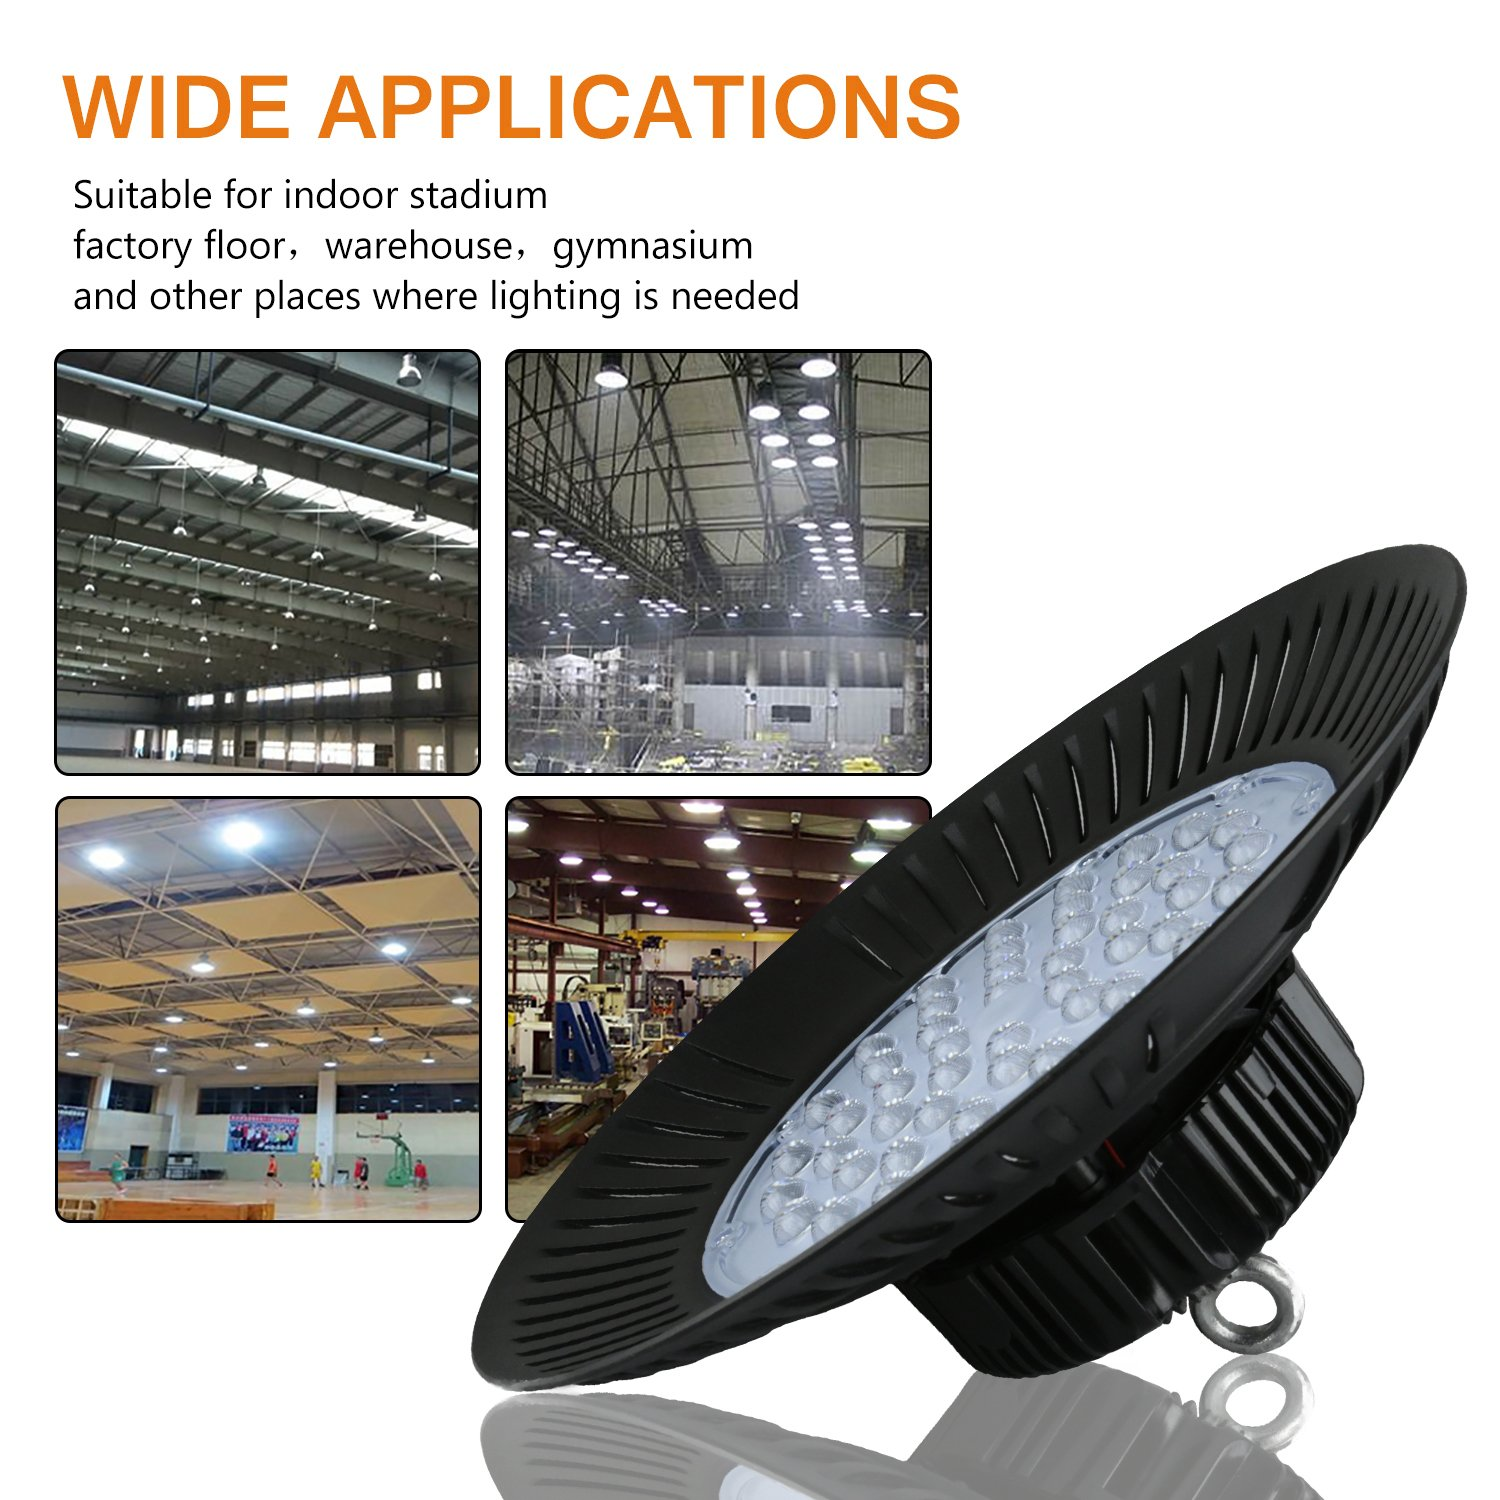 UFO High Bay Light 400W HID//HPS Equivalent Replacement Ceiling Light Fixture Motent SMD 2835 120 LEDs 5000K Daylight White Industrial//Commercial Chandelier AC100-265V 11000lm 100W Factory Lamp